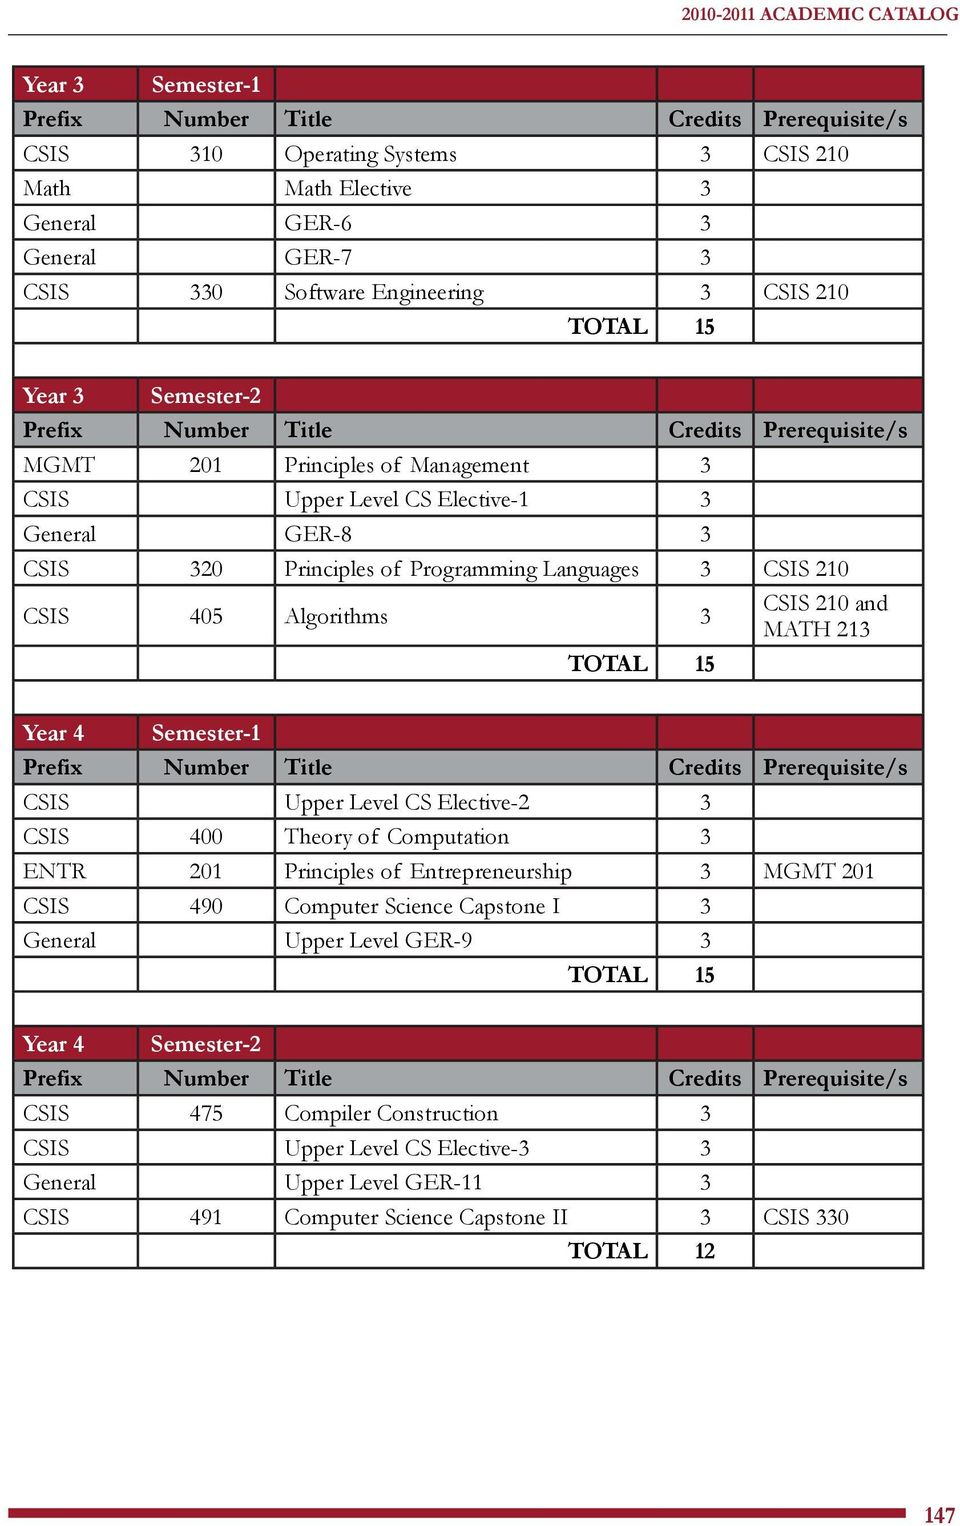 MATH 213 Year 4 Semester-1 CSIS Upper Level CS Elective-2 3 CSIS 400 Theory of Computation 3 ENTR 201 Principles of Entrepreneurship 3 MGMT 201 CSIS 490 Computer Science Capstone I 3 General